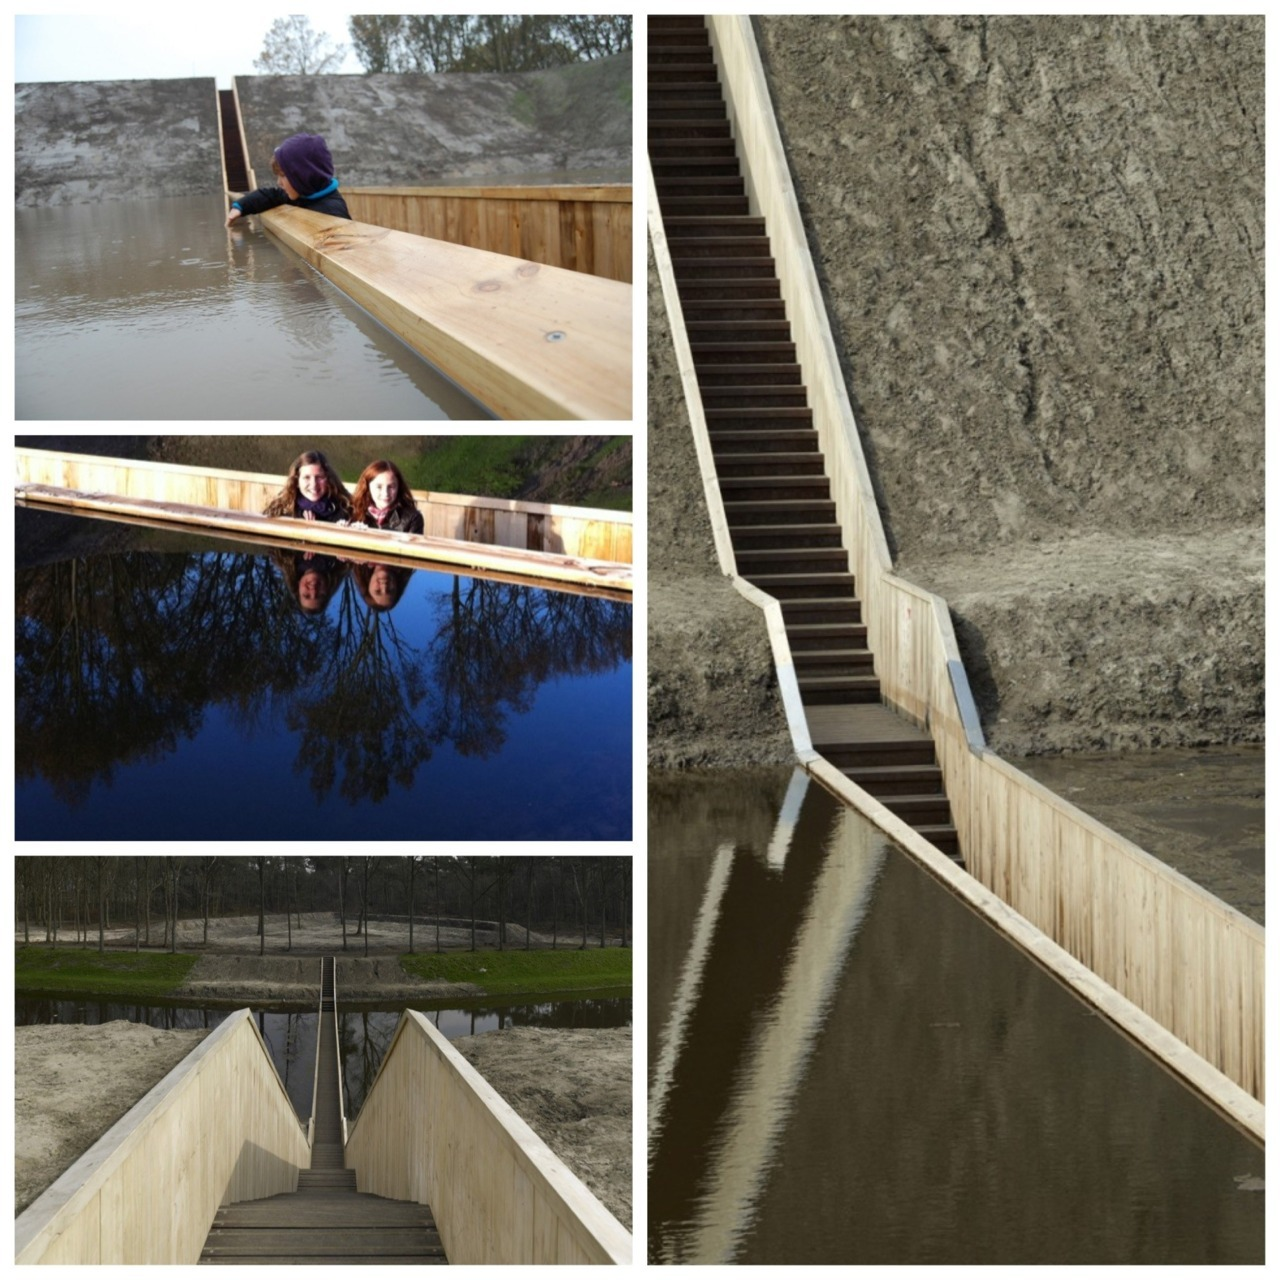 The Moses Bridge - archrepdaily.com